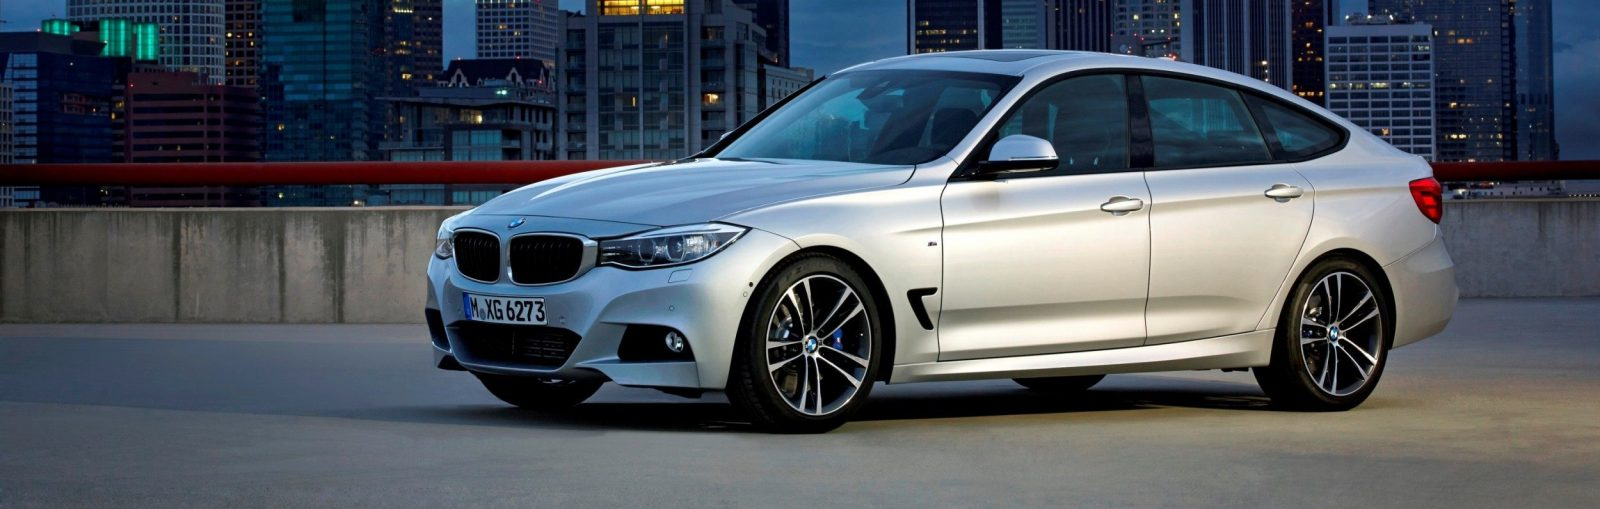 Best of Awards - 1000 miles at 100MPH - 2014 M Sport BMW 335i GT 63